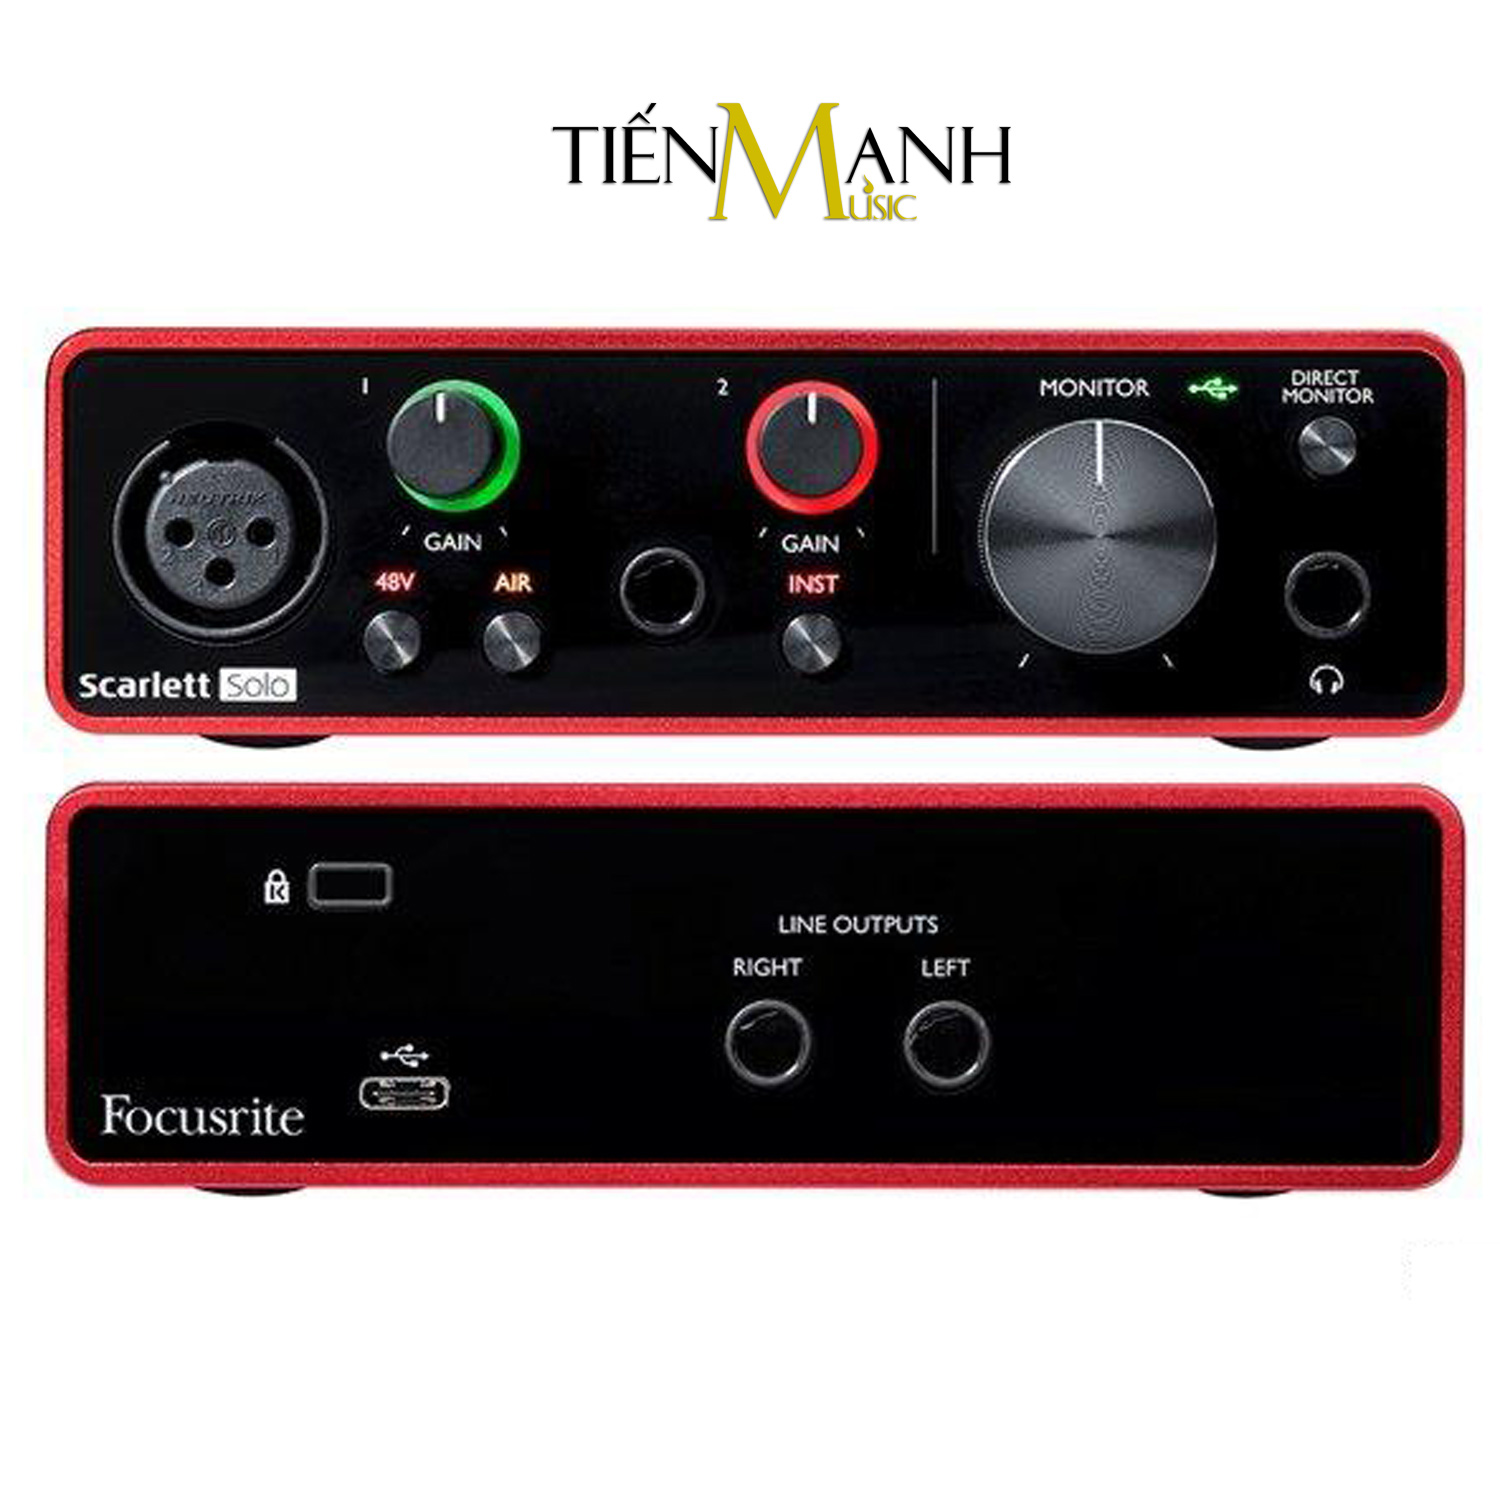 Focusrite Scarlett Solo Studio Pack Gen 3 Sound Card Âm Thanh - USB Audio Interface (Focus 3rd Generation - Gen3)